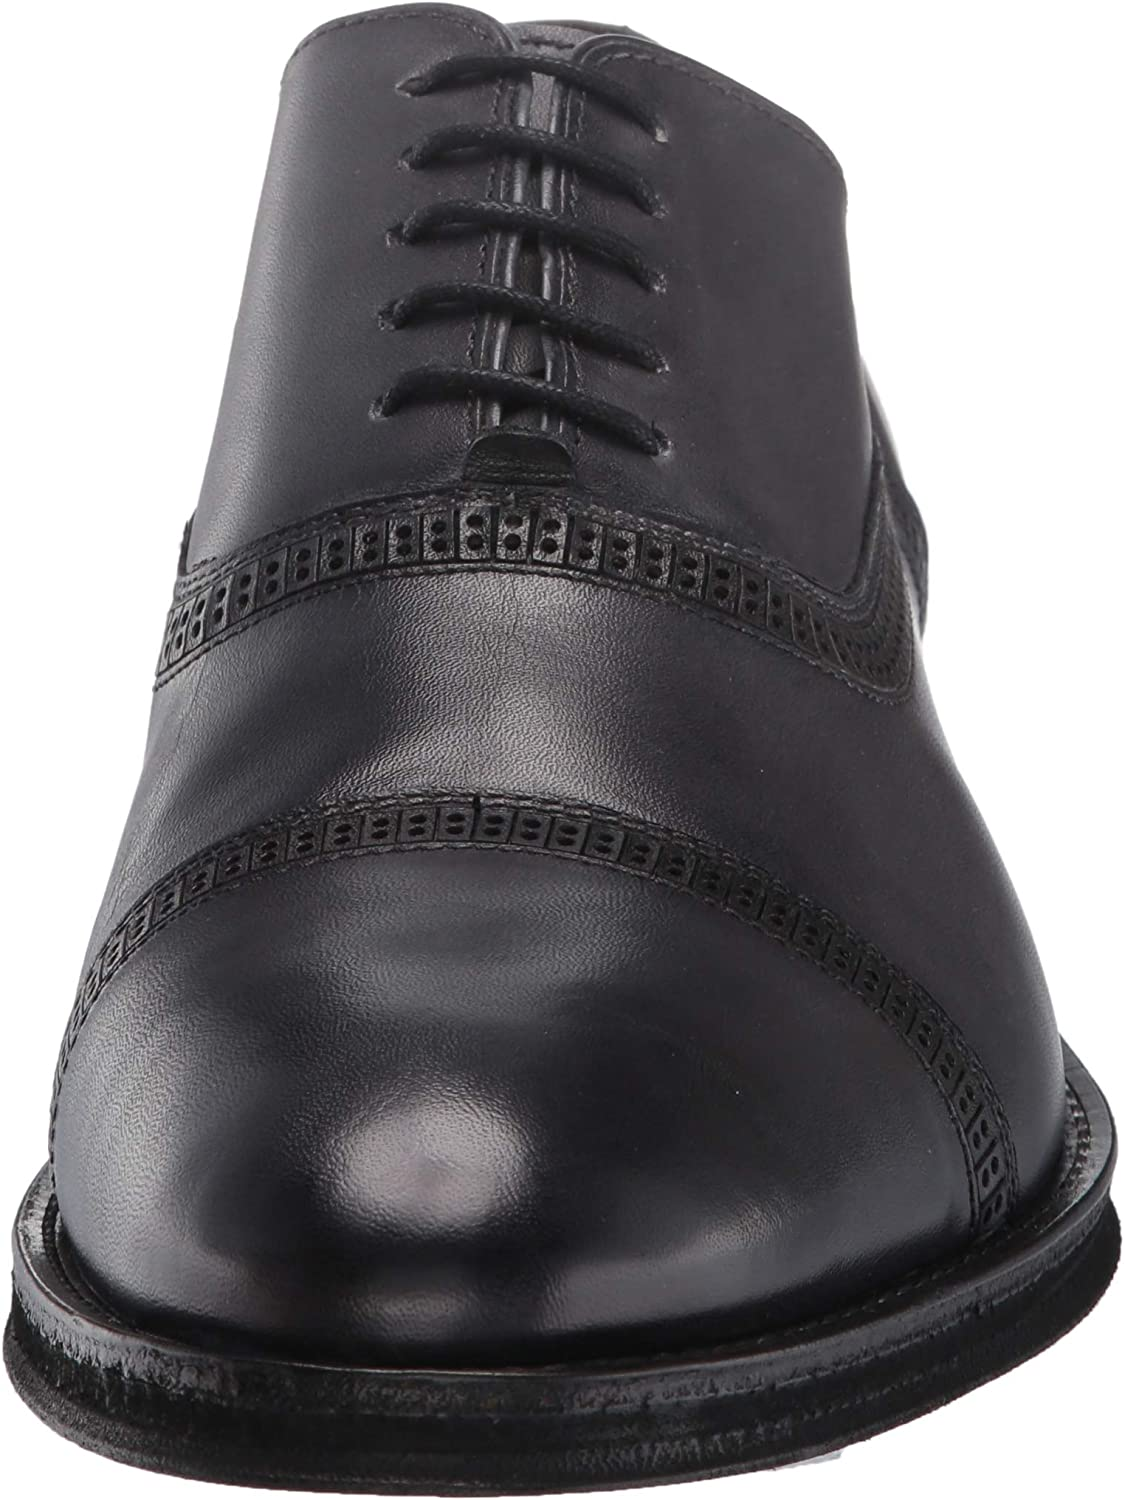 Kenneth Cole REACTION Mens Progress Lace Up Oxford